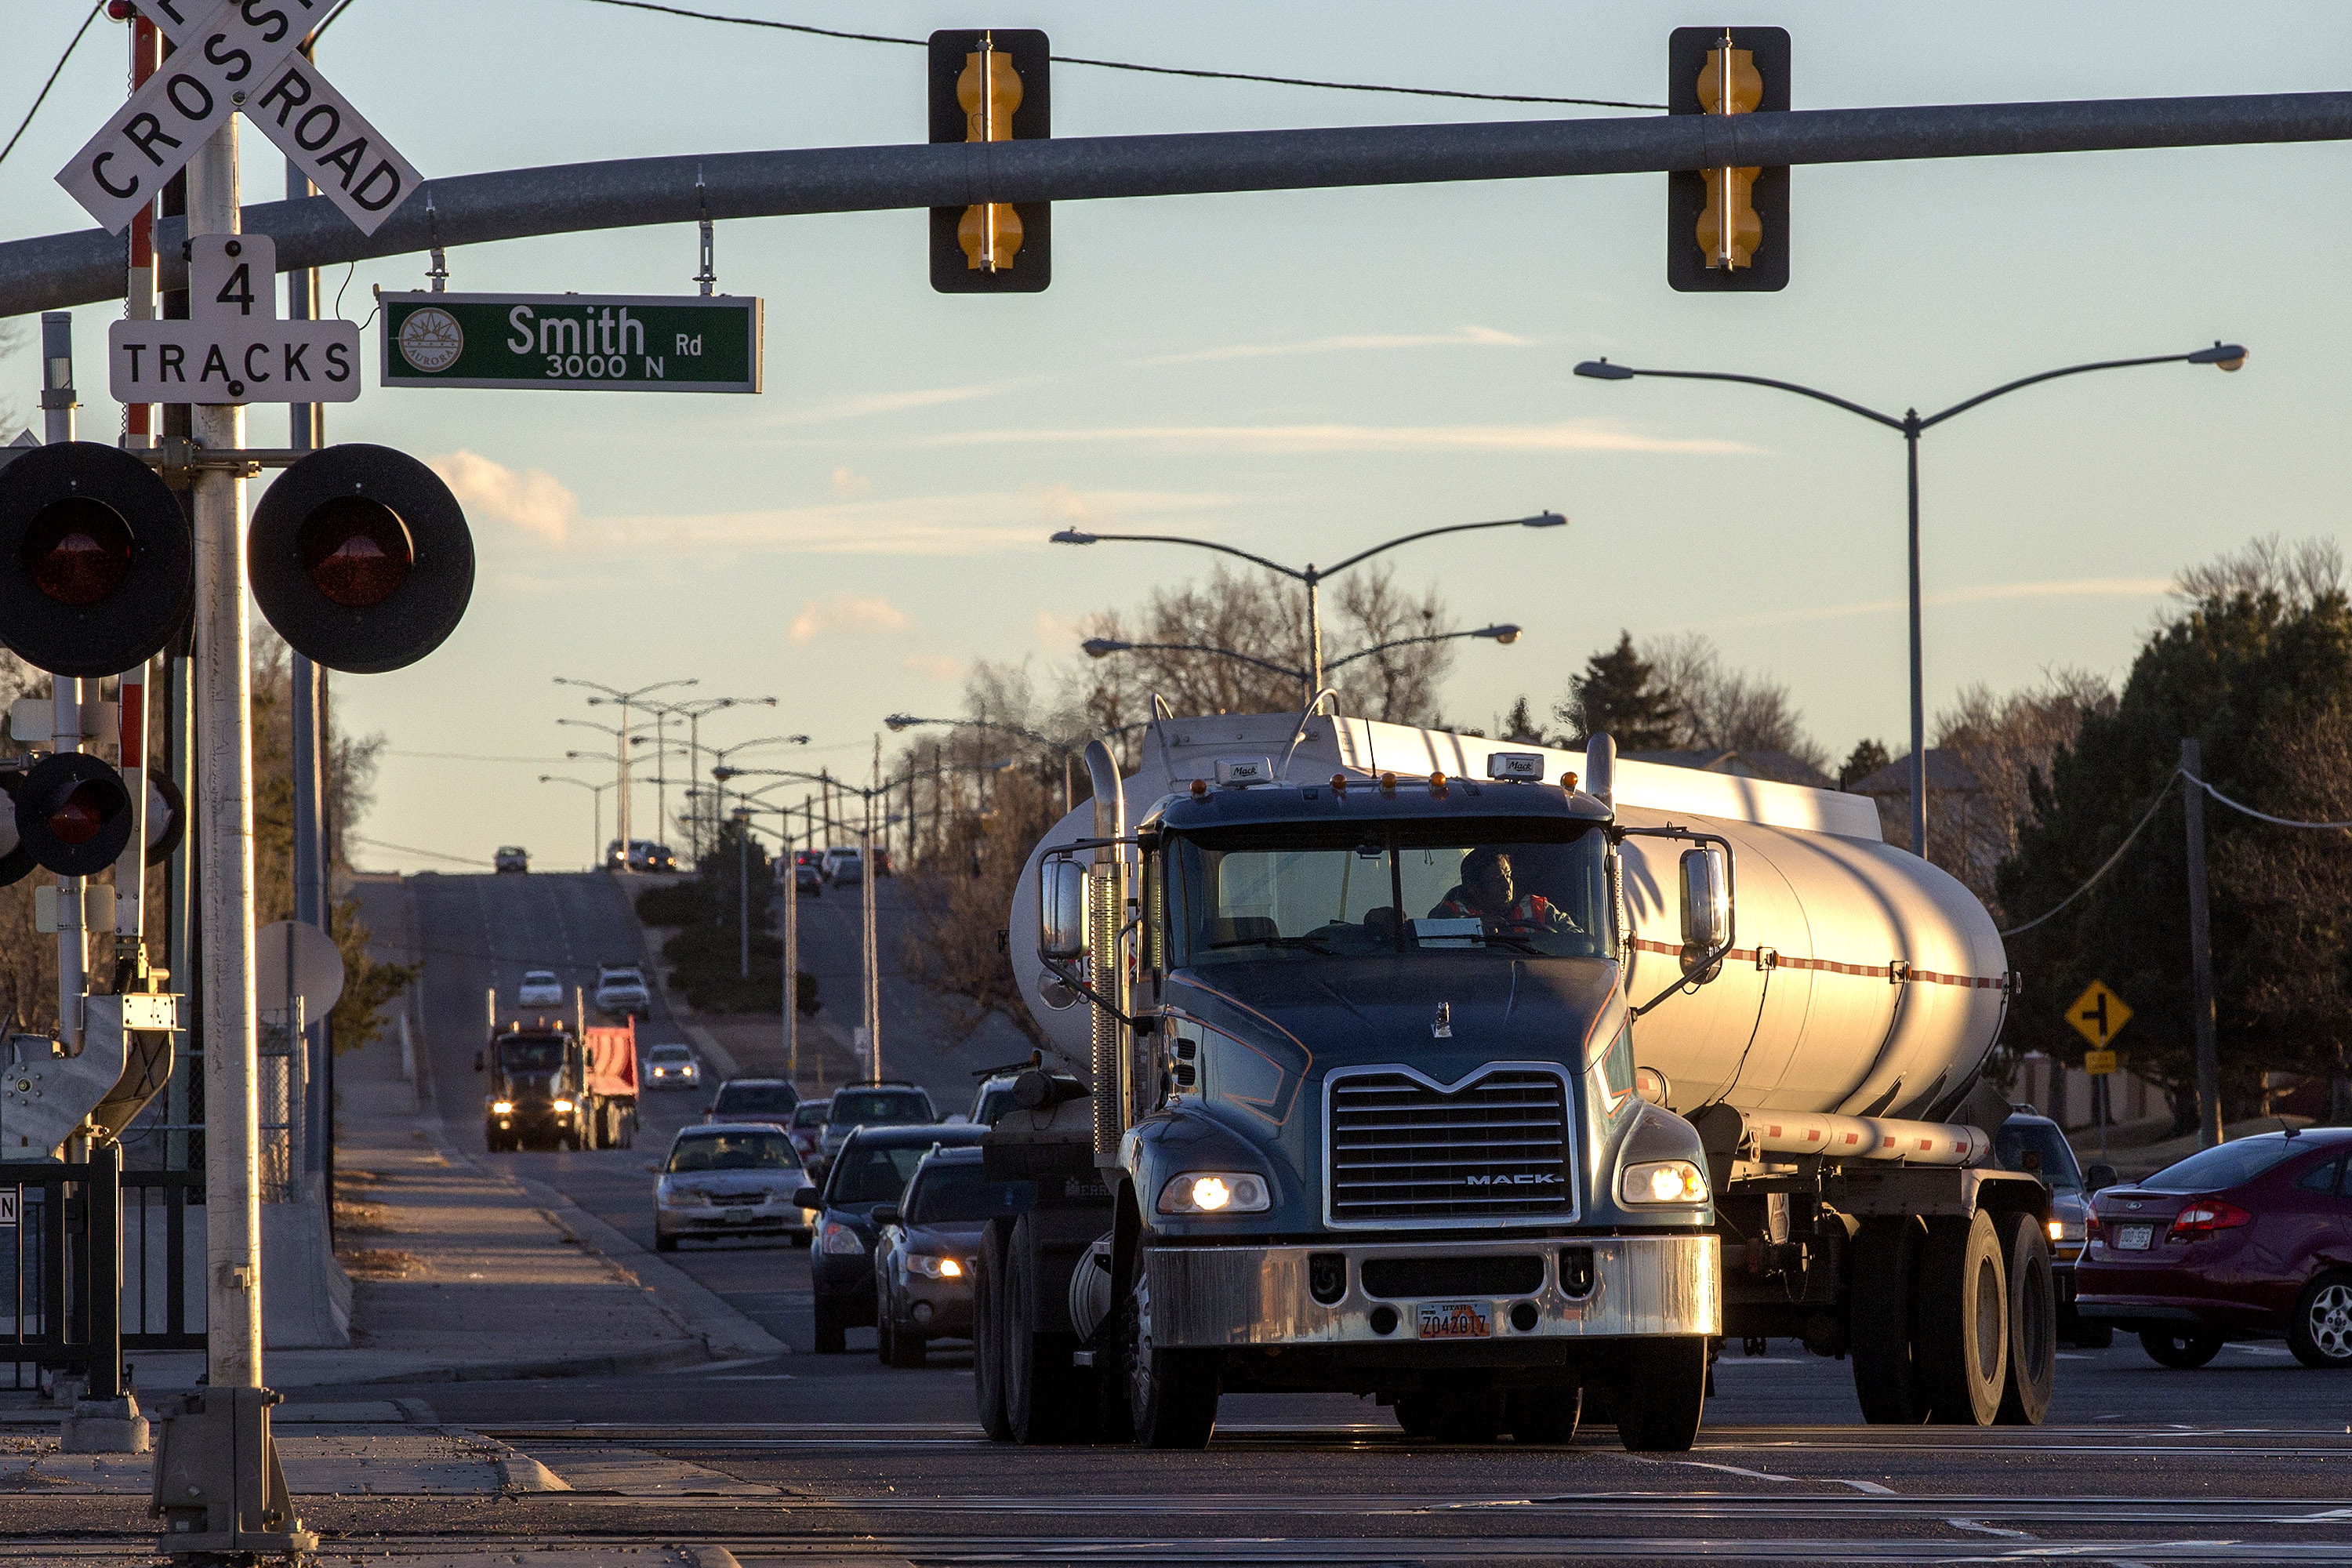 <p>A tanker truck cross the railroad tracks at Smith Road and Chambers Road in Aurora On Monday, Jan. 7, 2018.</p>